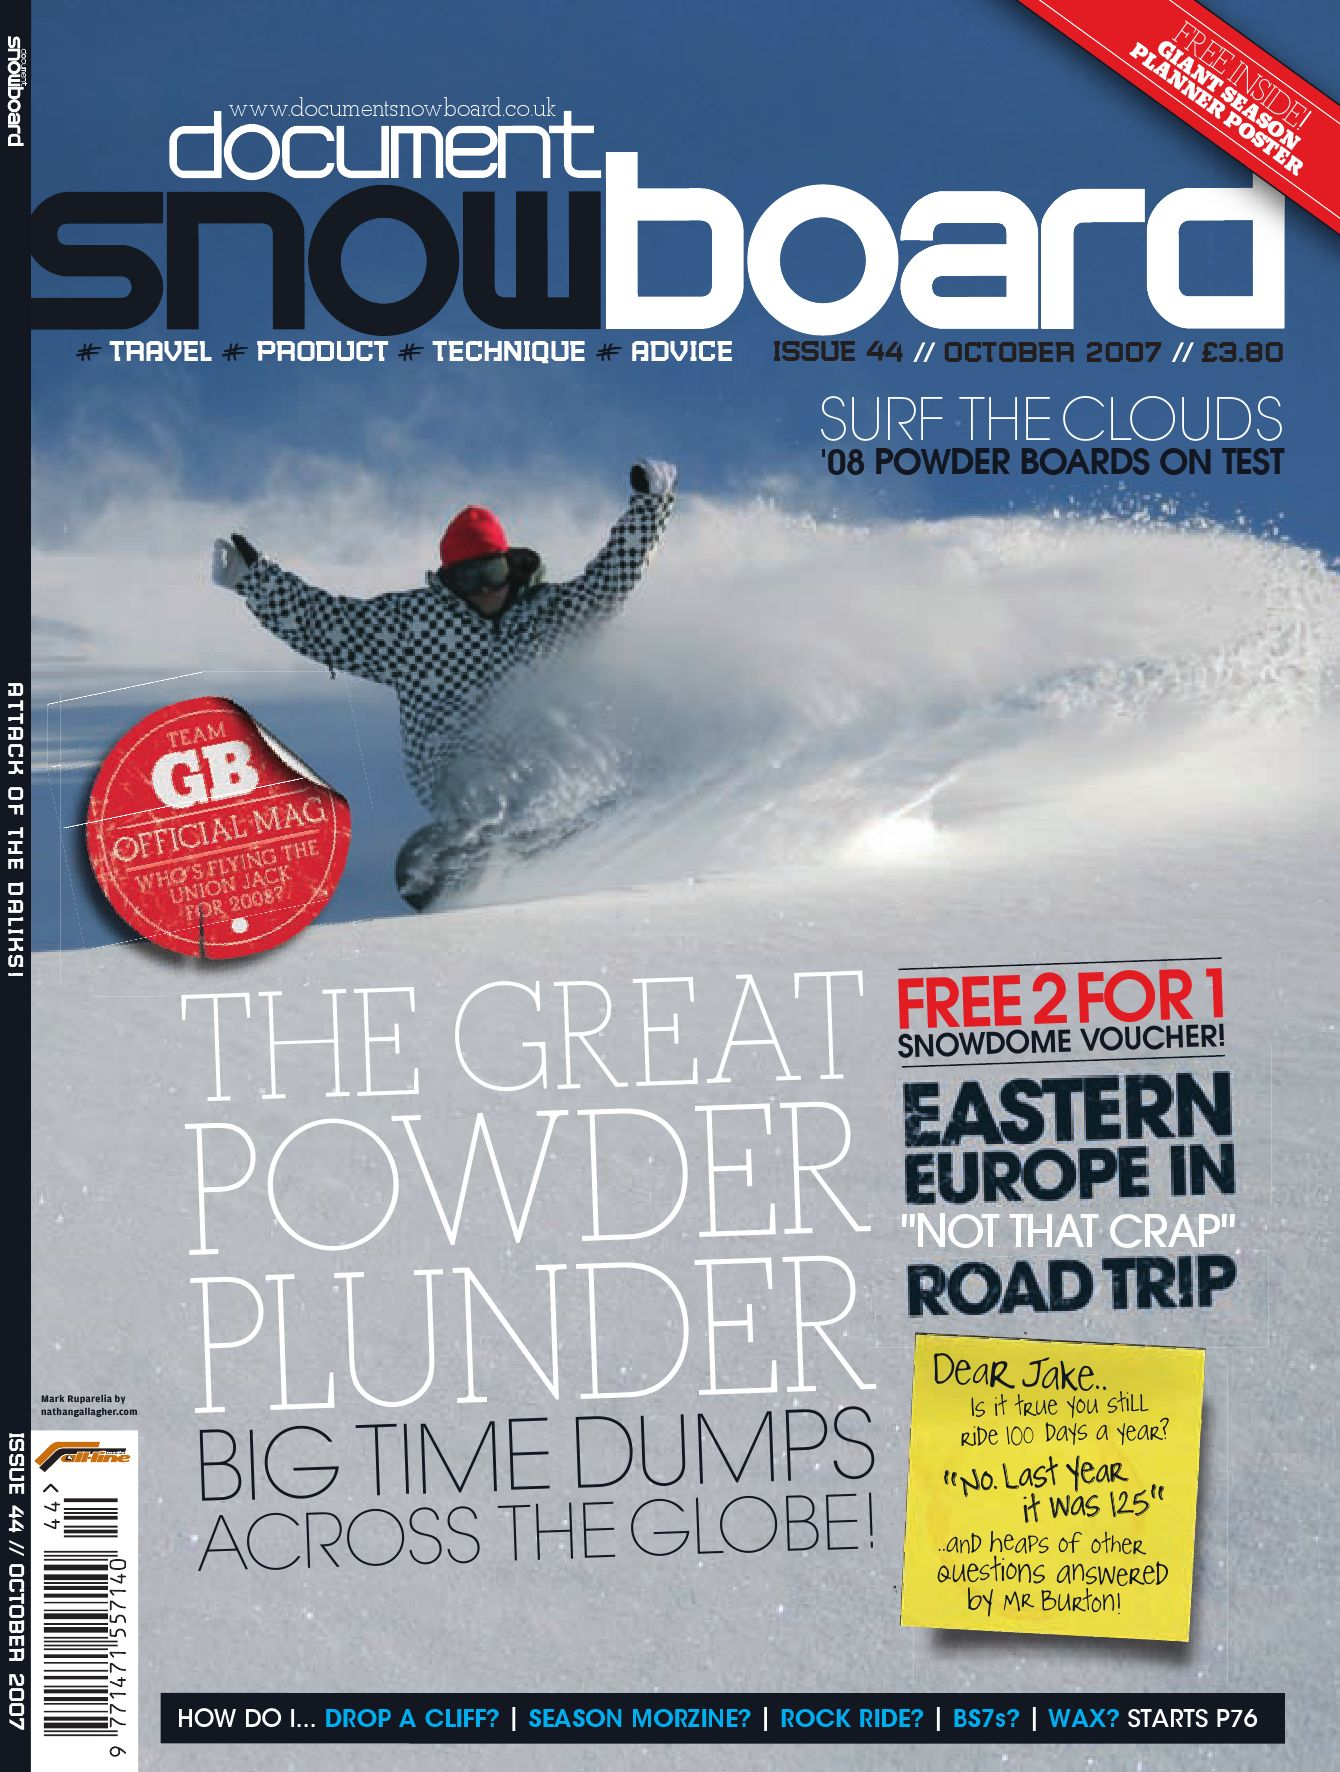 Document Snowboard 44 By Andy Cremin